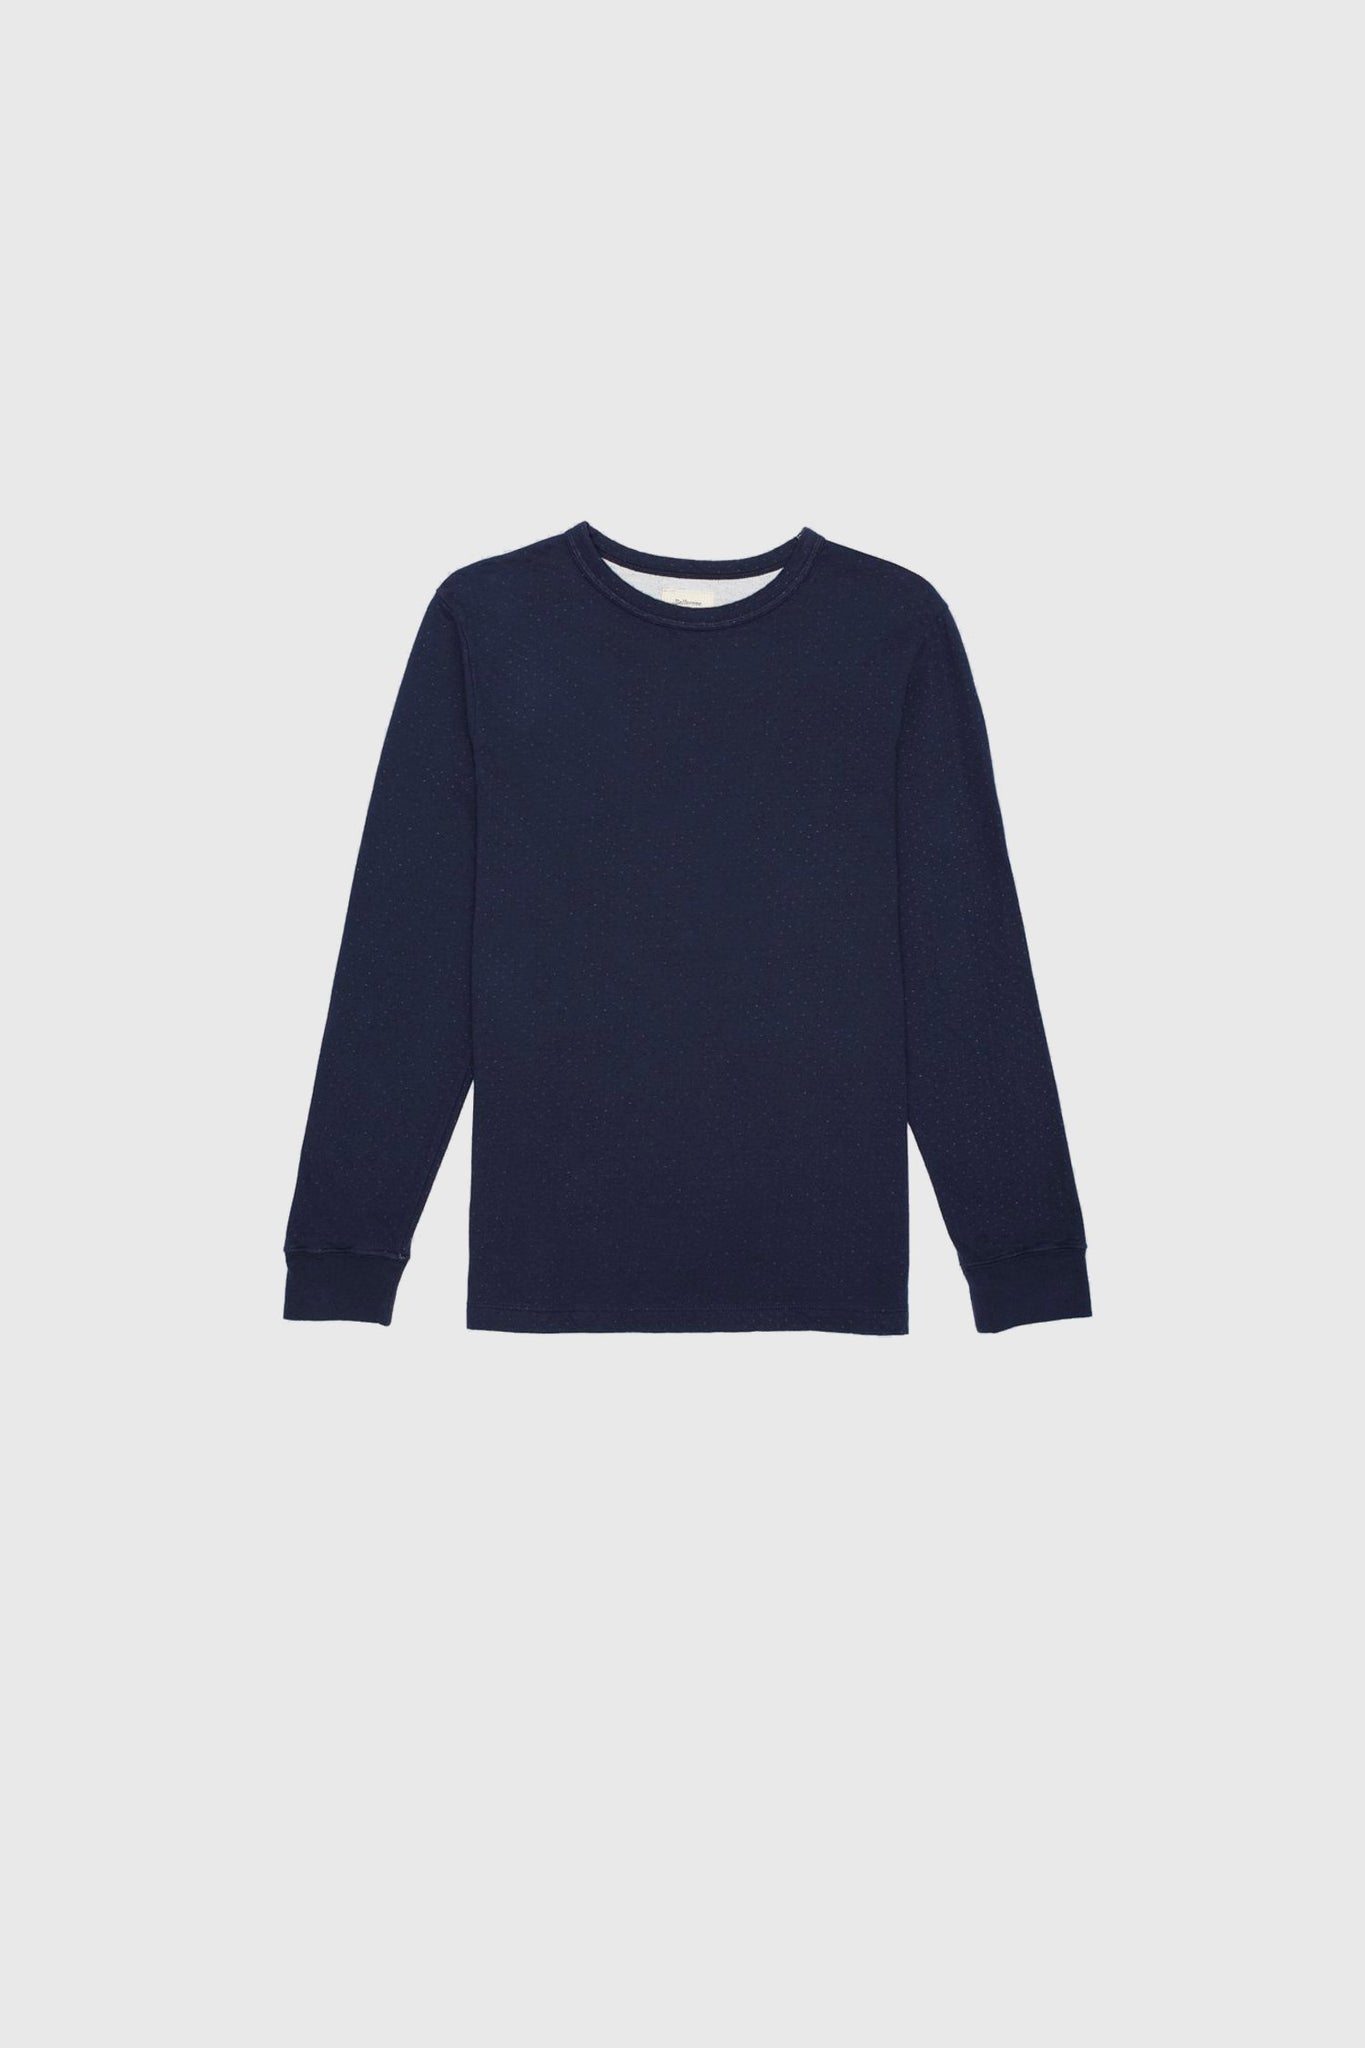 BELLEROSE: FRESH 82 NAVY